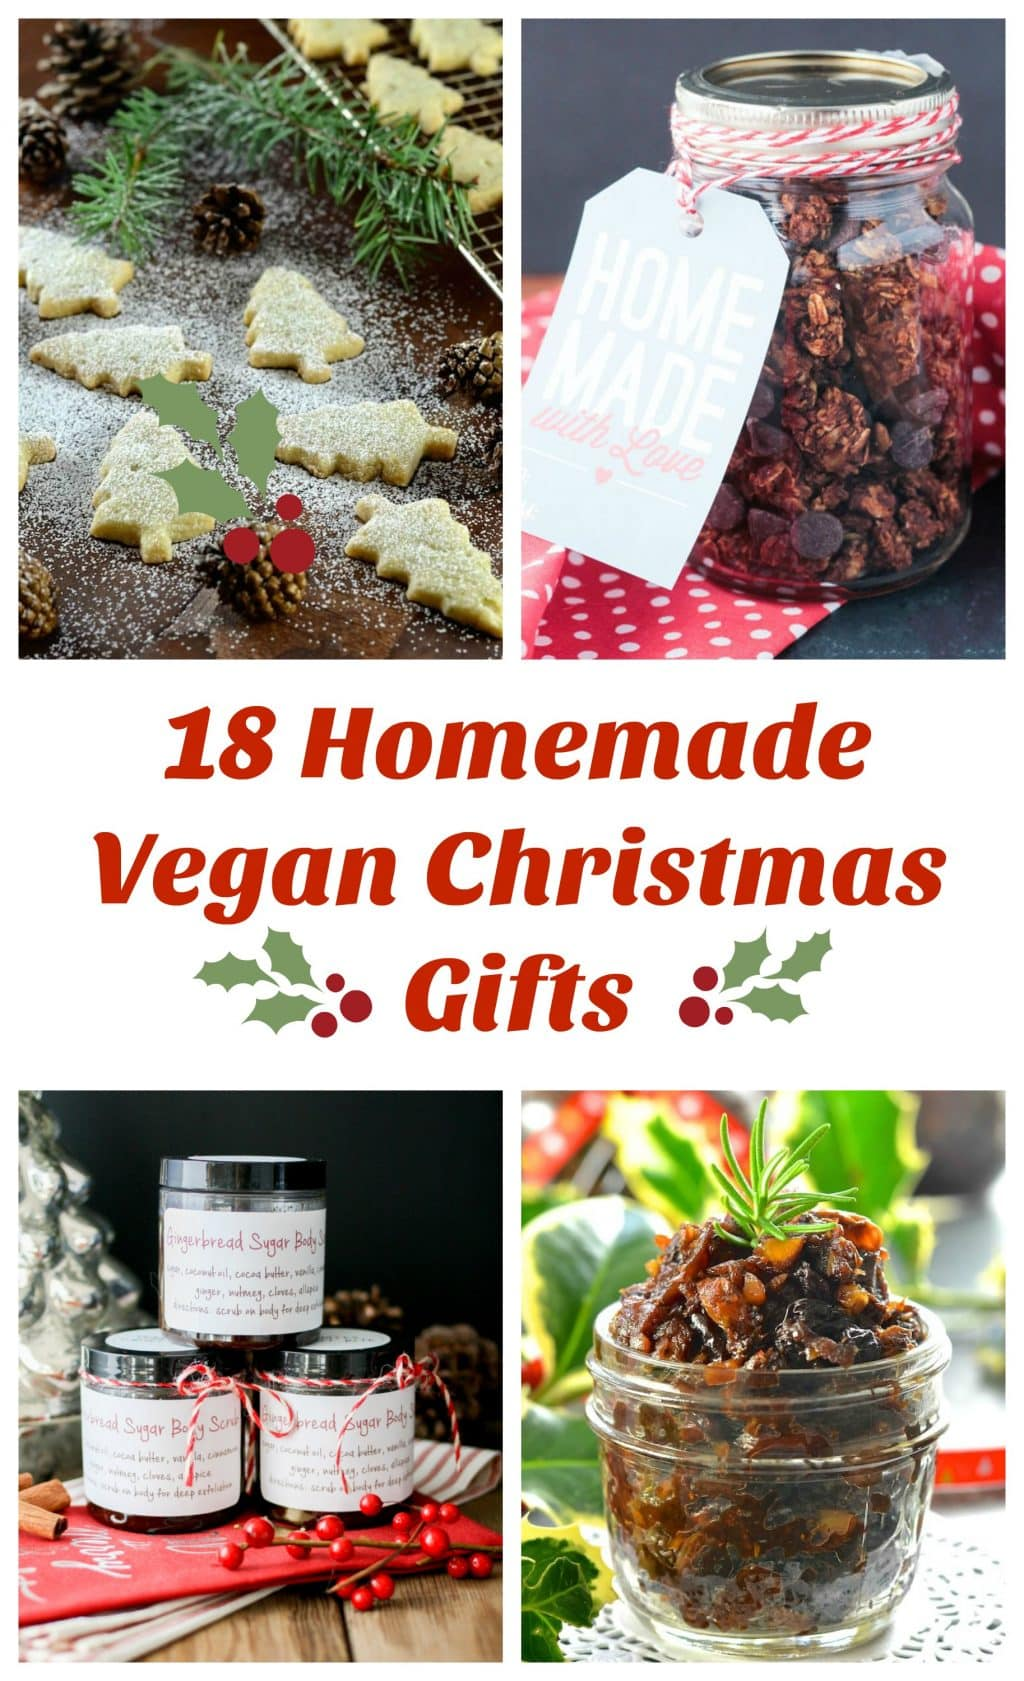 19 Homemade Vegan Christmas Gifts A Virtual Vegan